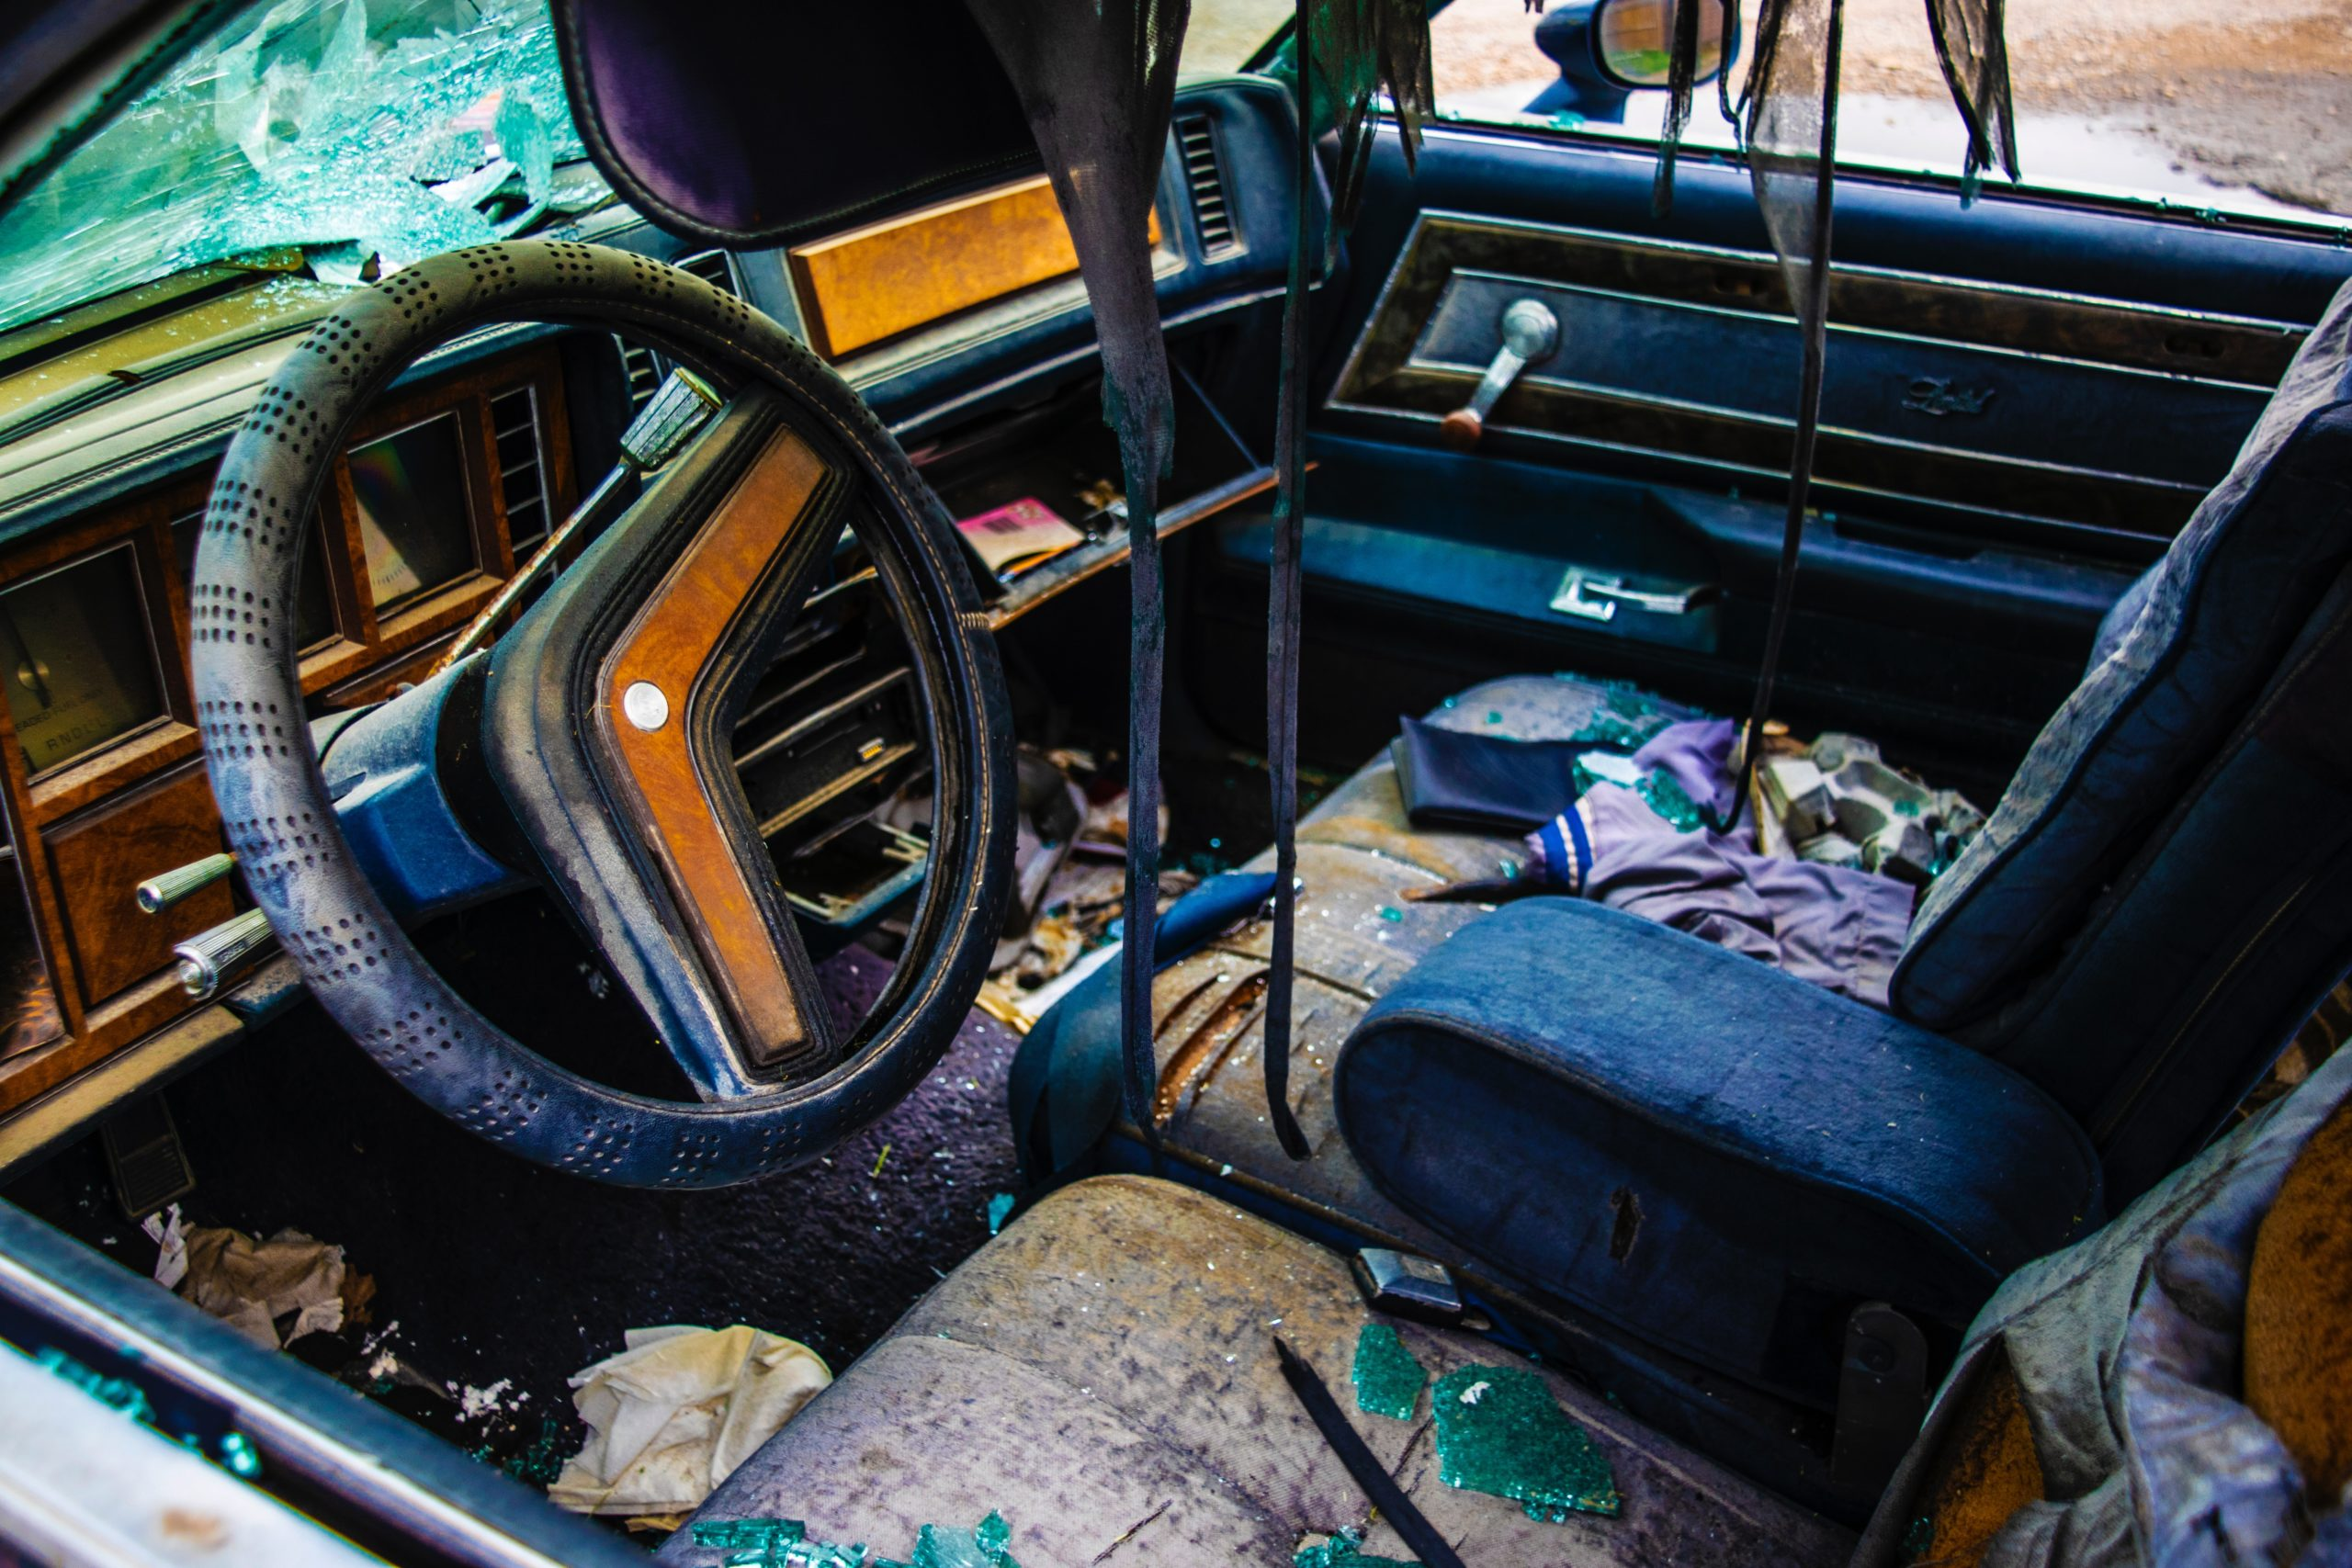 We Buy Non Running Vehicles-Cash For Junk Cars in Port St. Lucie, FL!